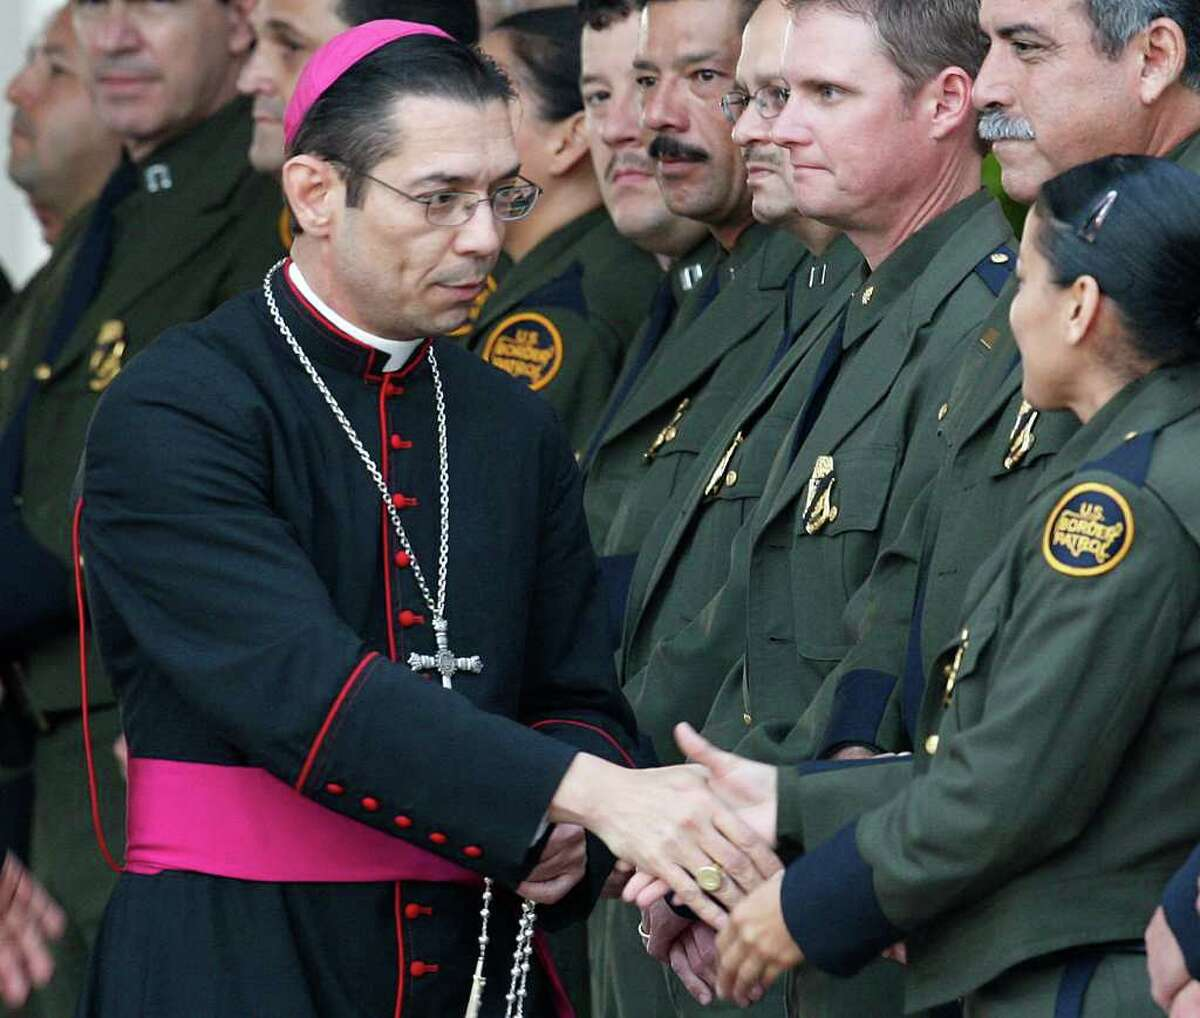 Diocese of Brownsville Bishop Daniel E. Flores arrives for the wake of slain Immigrations and Customs Enforcement Special Agent Jaime Zapata at the Brownsville Event Center on Feb. 21.